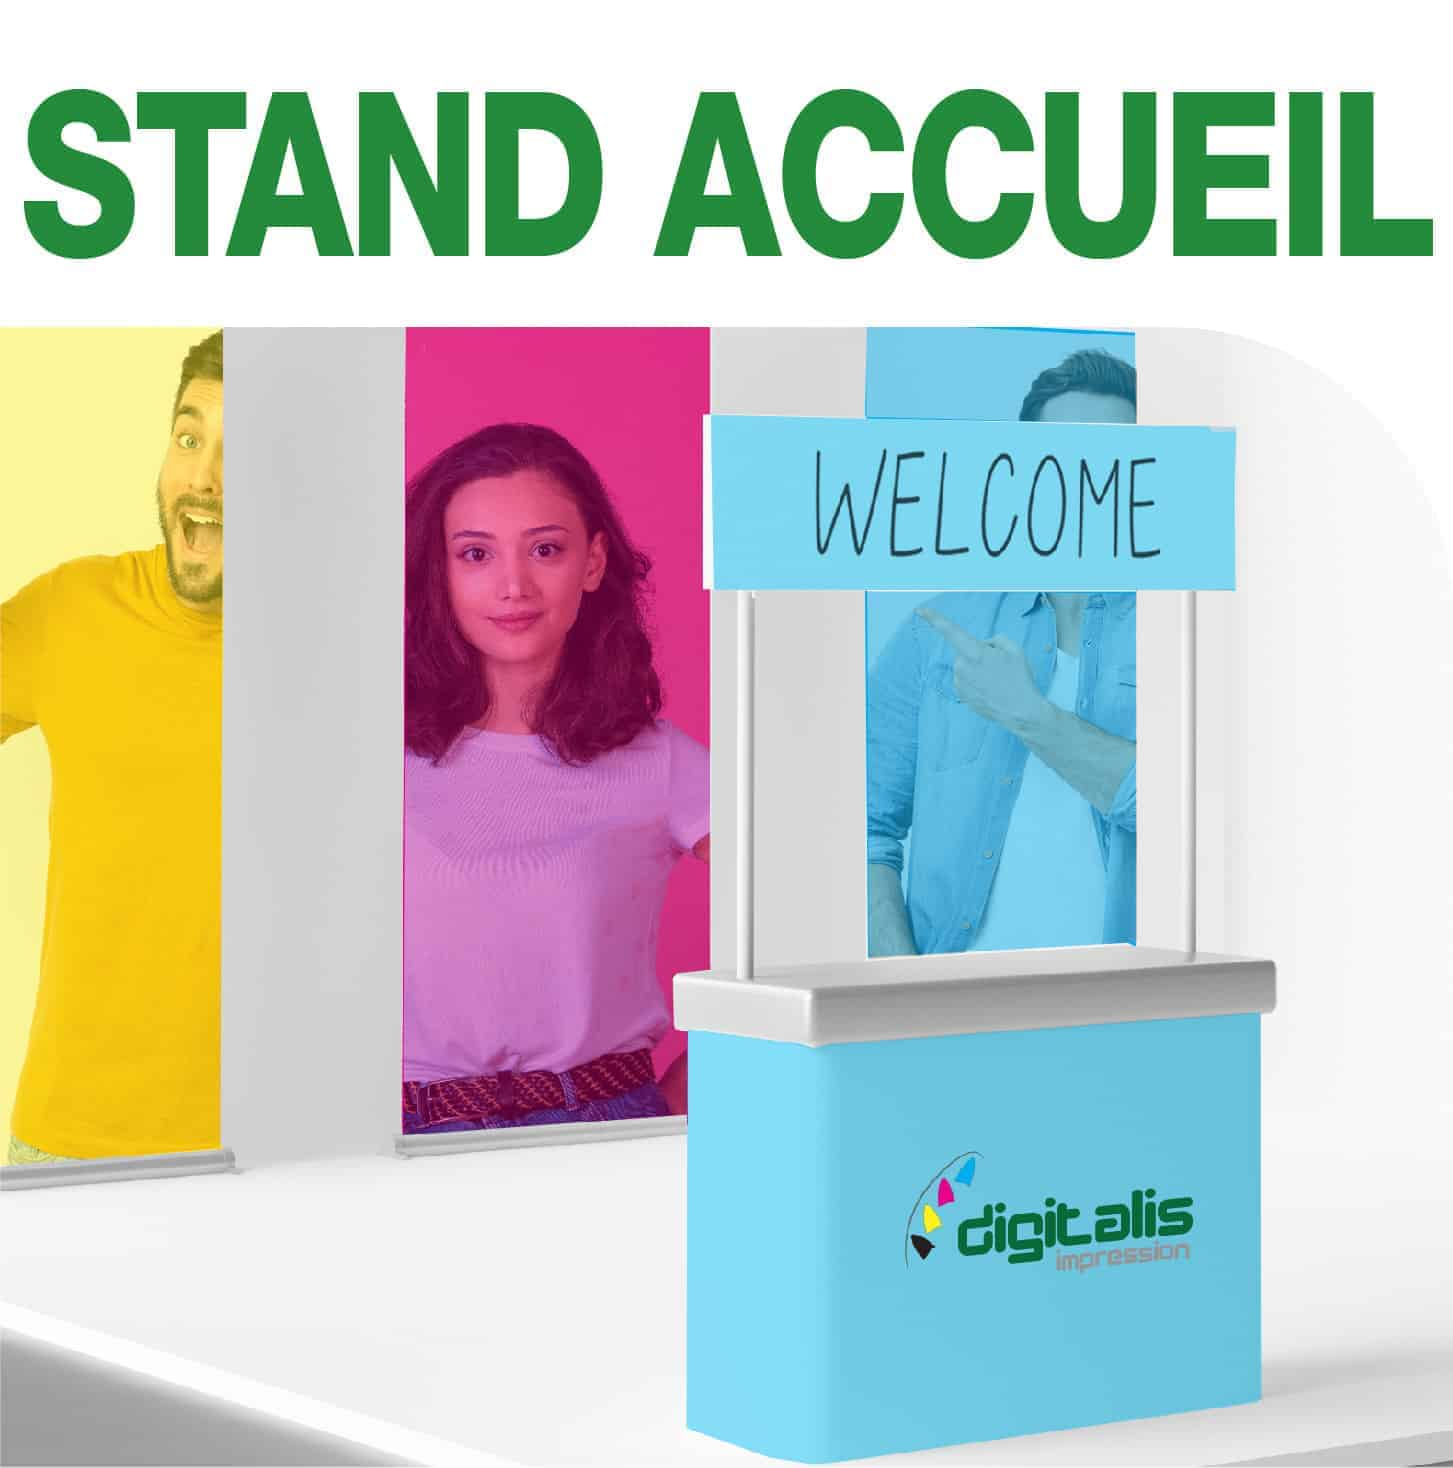 STAND ACCUEIL